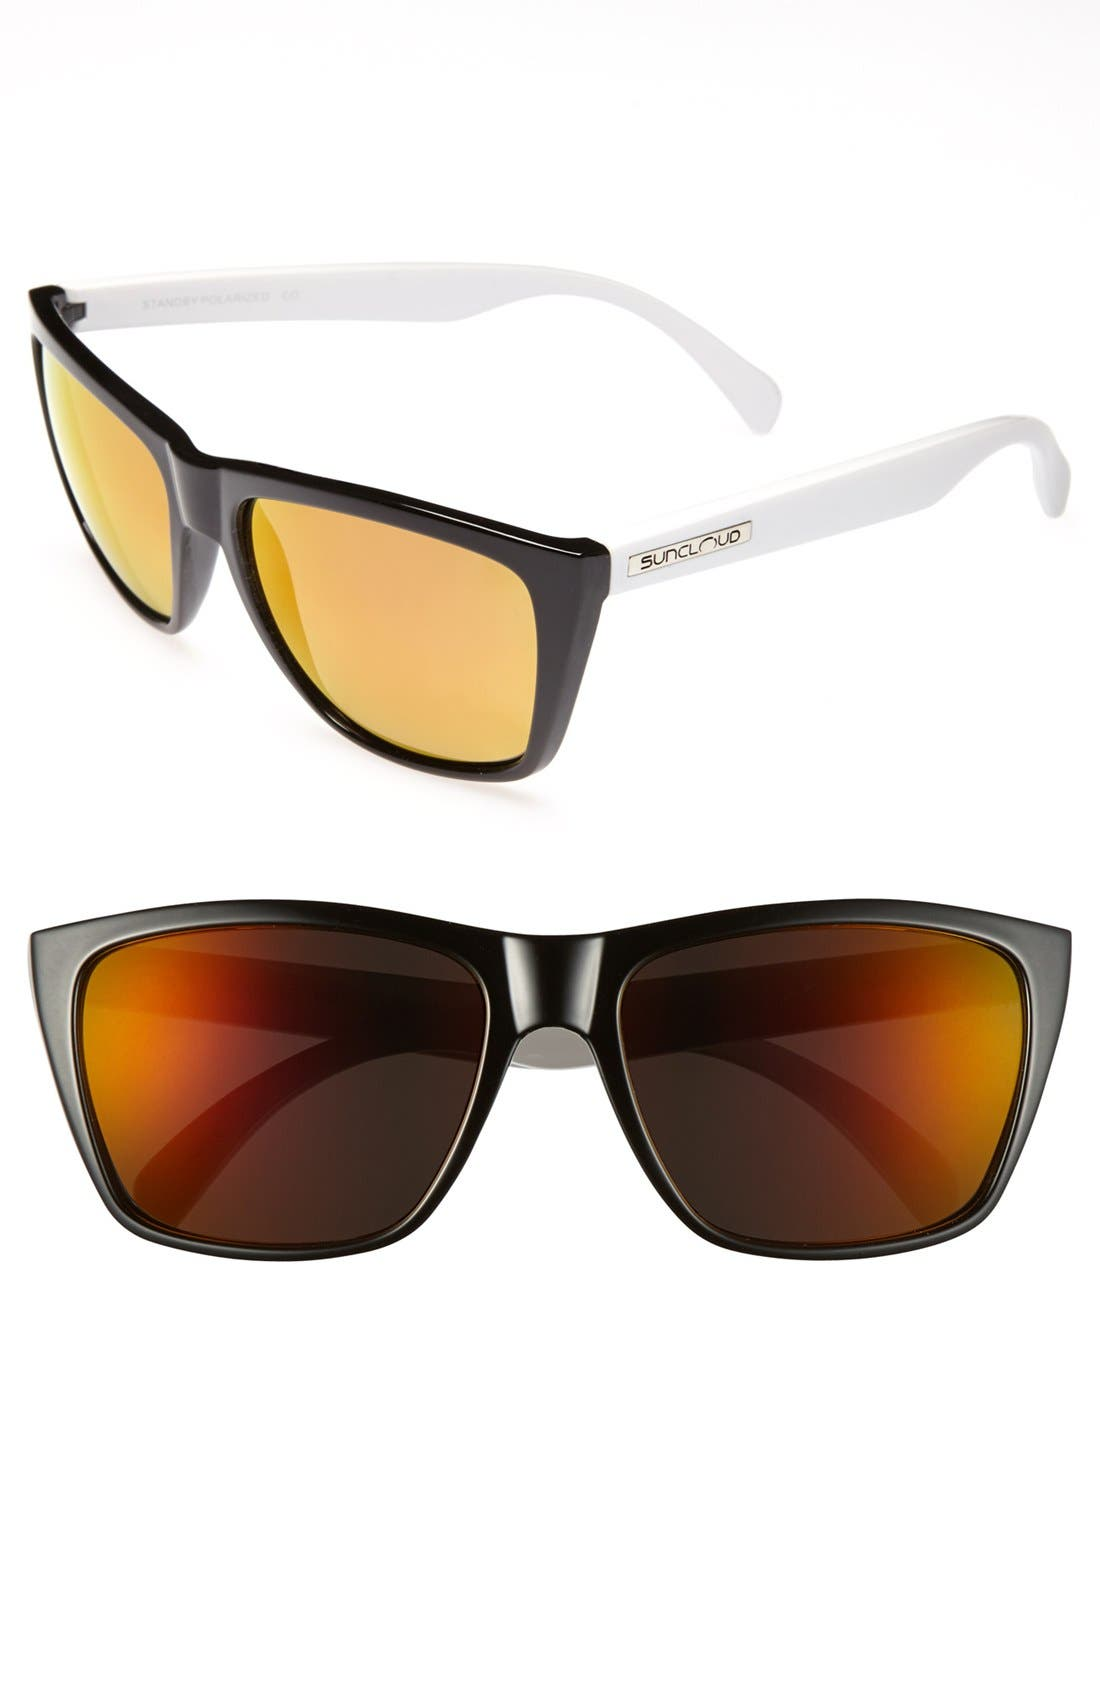 Alternate Image 1 Selected - Suncloud 'Standby' Polarized Sunglasses